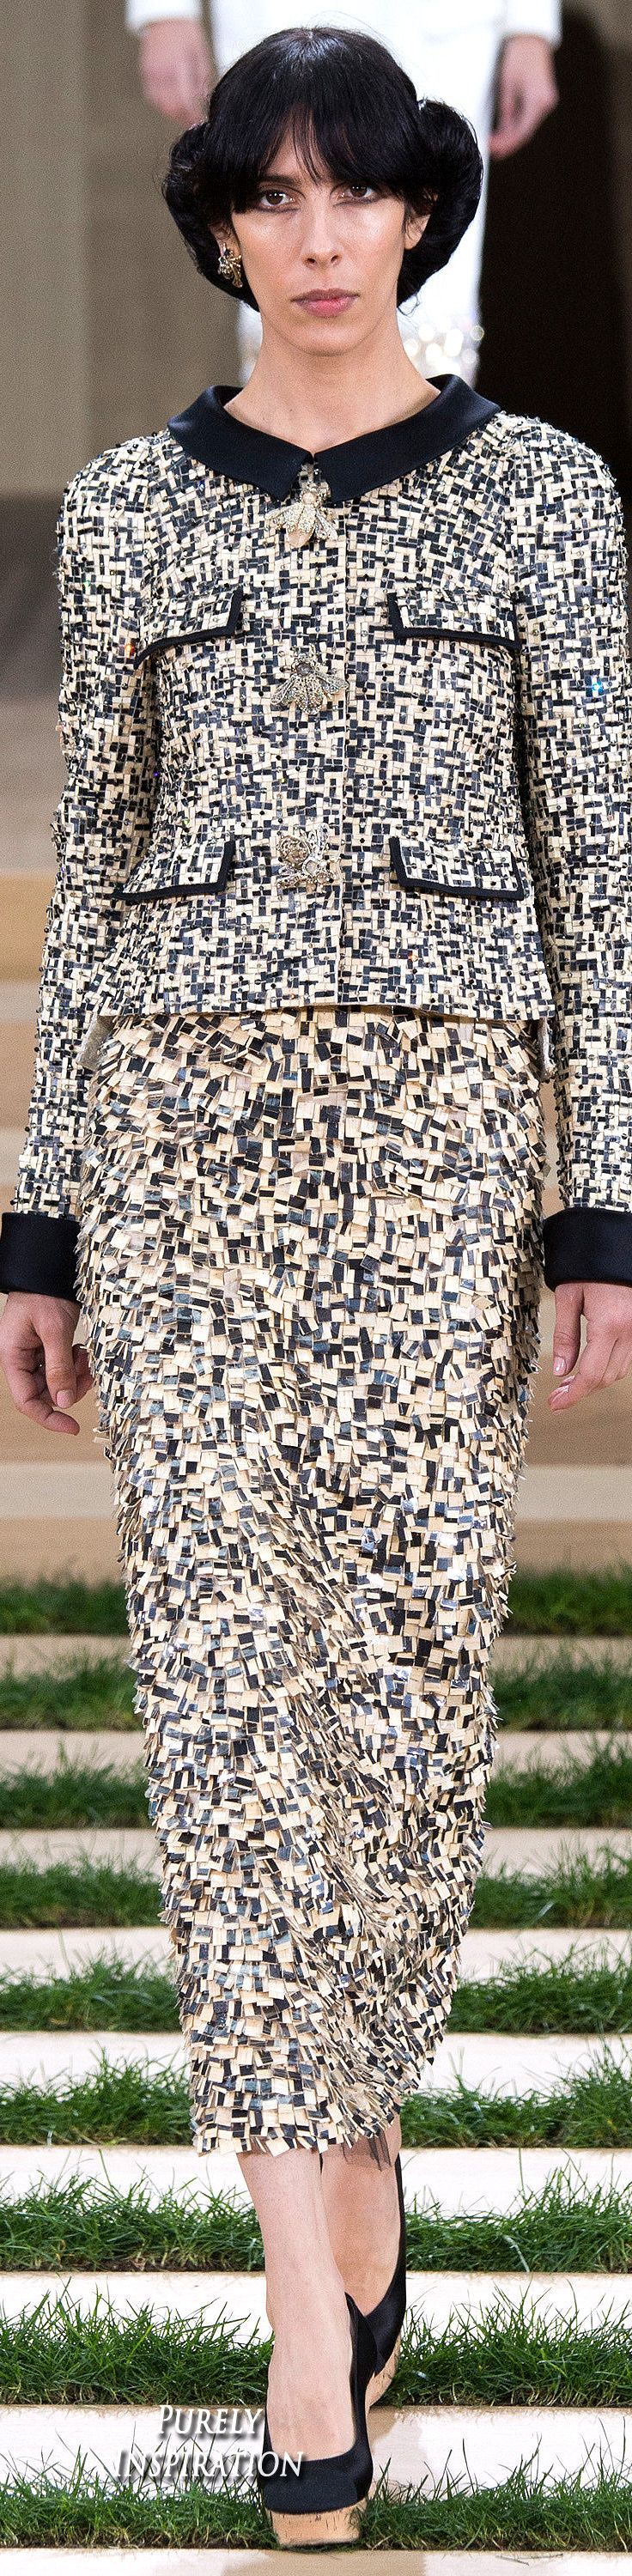 Best 25 Chanel Spring Ideas Only On Pinterest Chanel 2015 Chanel Spring 2016 And Couture Details